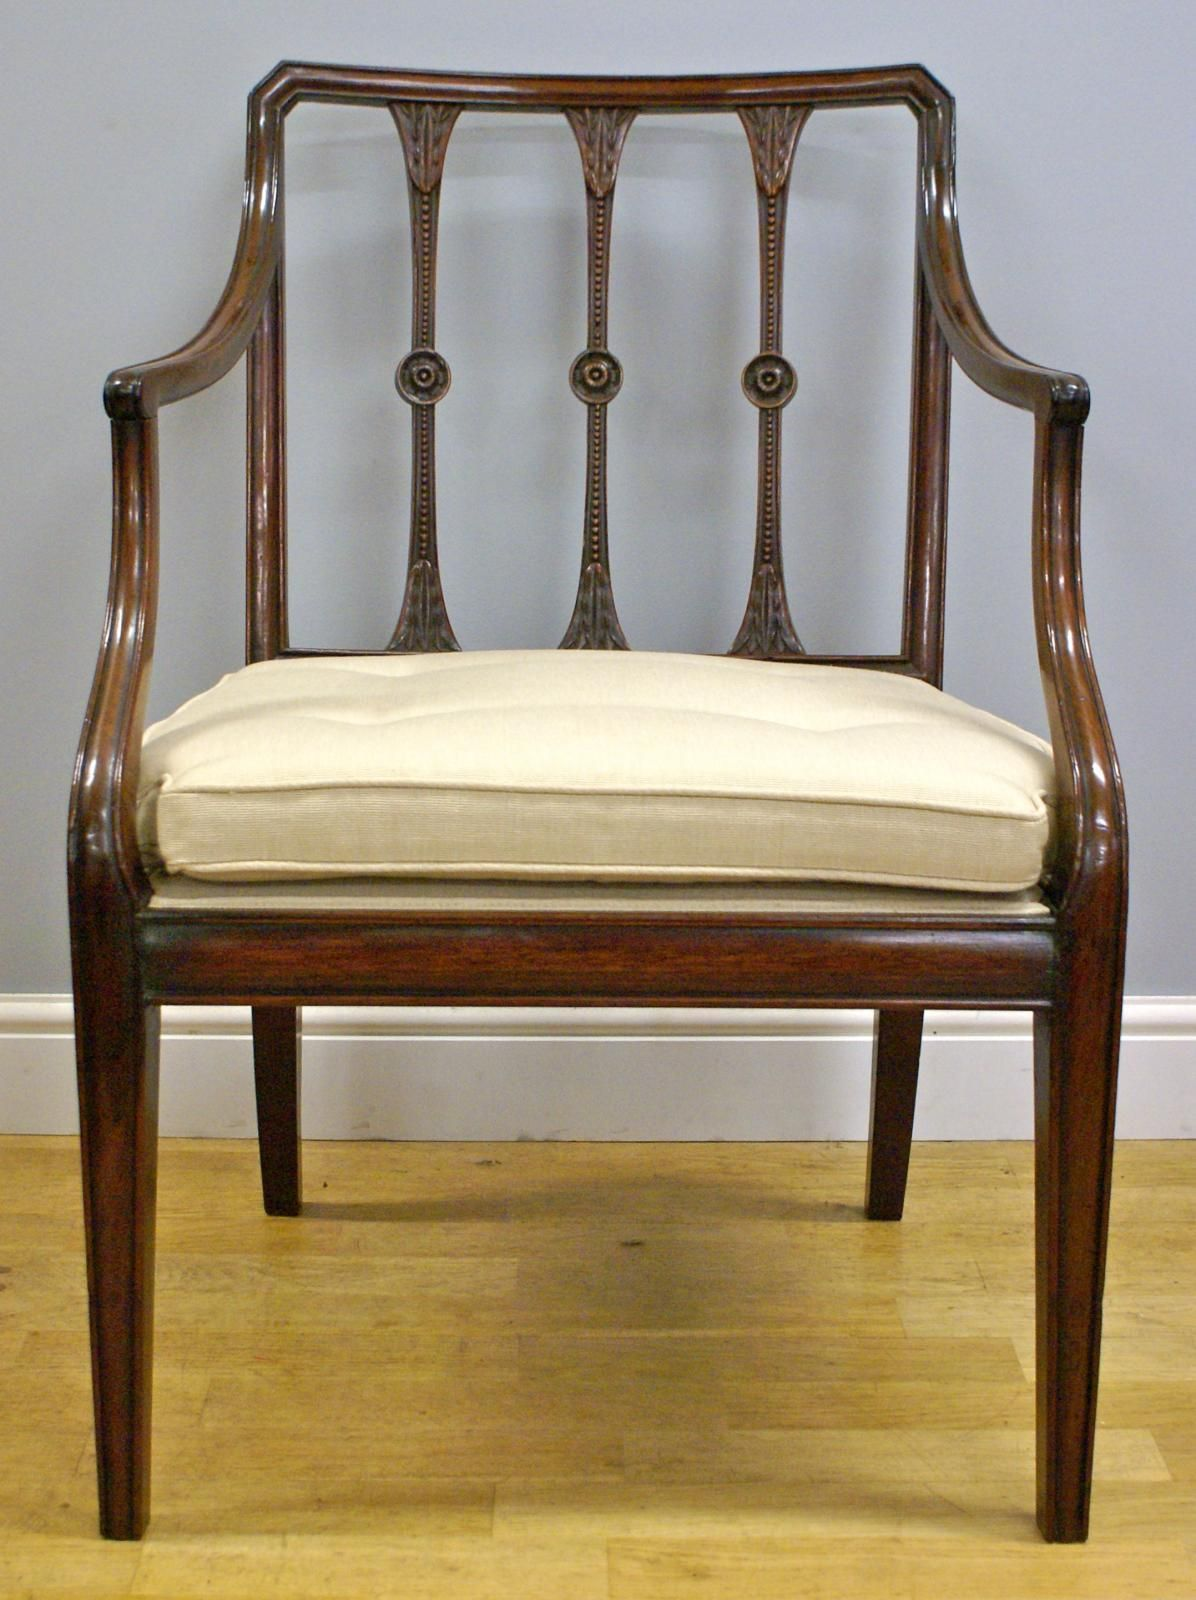 A Hepplewhite period Cuban mahogany arm chair | Looking For Antiques - A Hepplewhite Period Cuban Mahogany Arm Chair Looking For